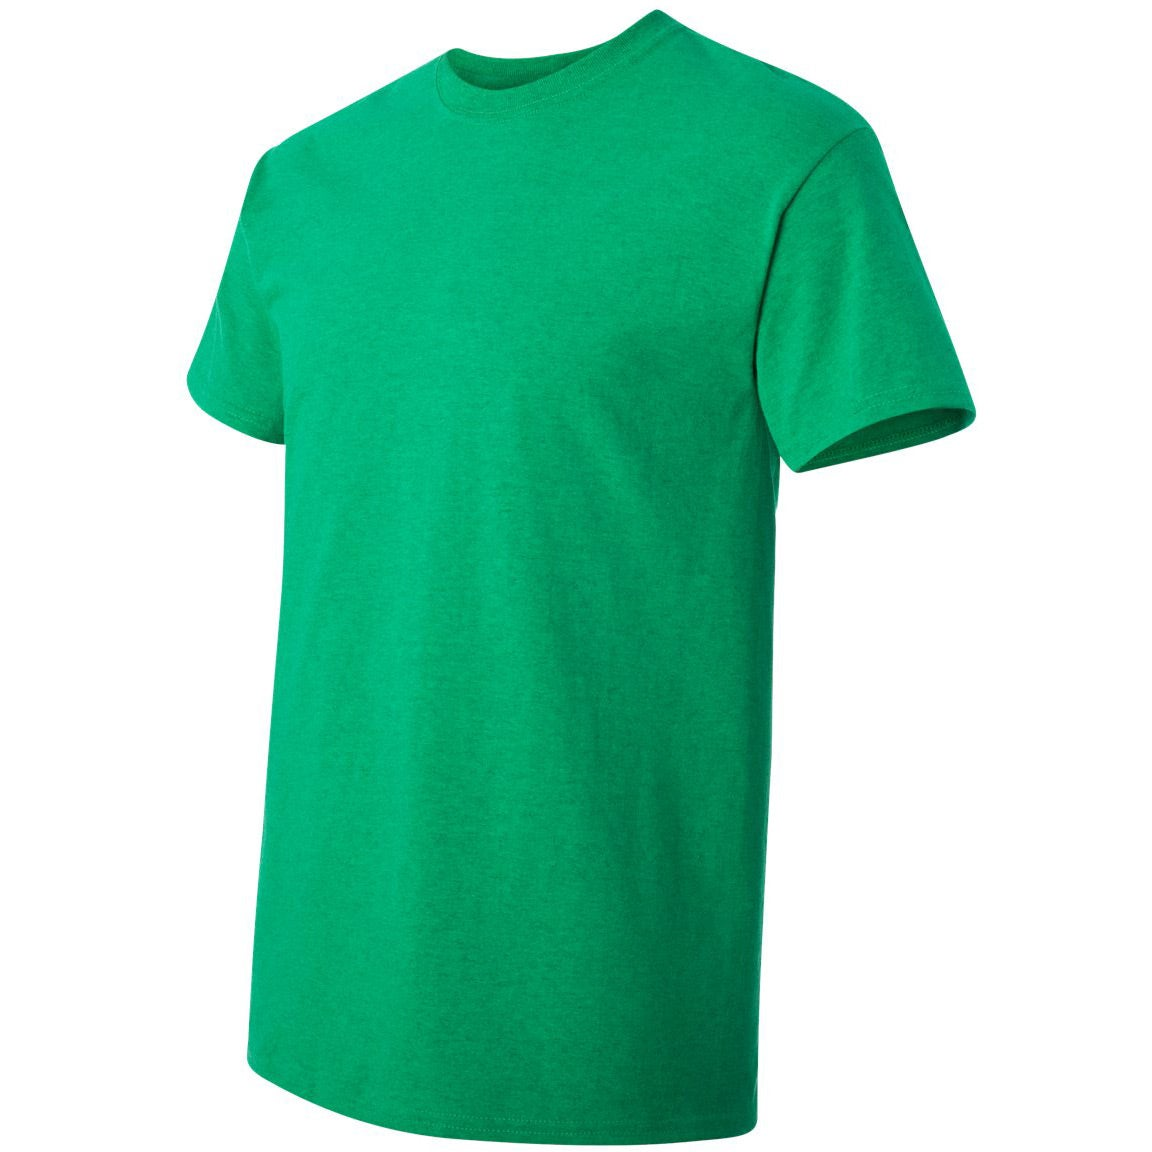 Dark gildan ultra cotton t shirt 100 cotton t shirts for Gildan t shirts online